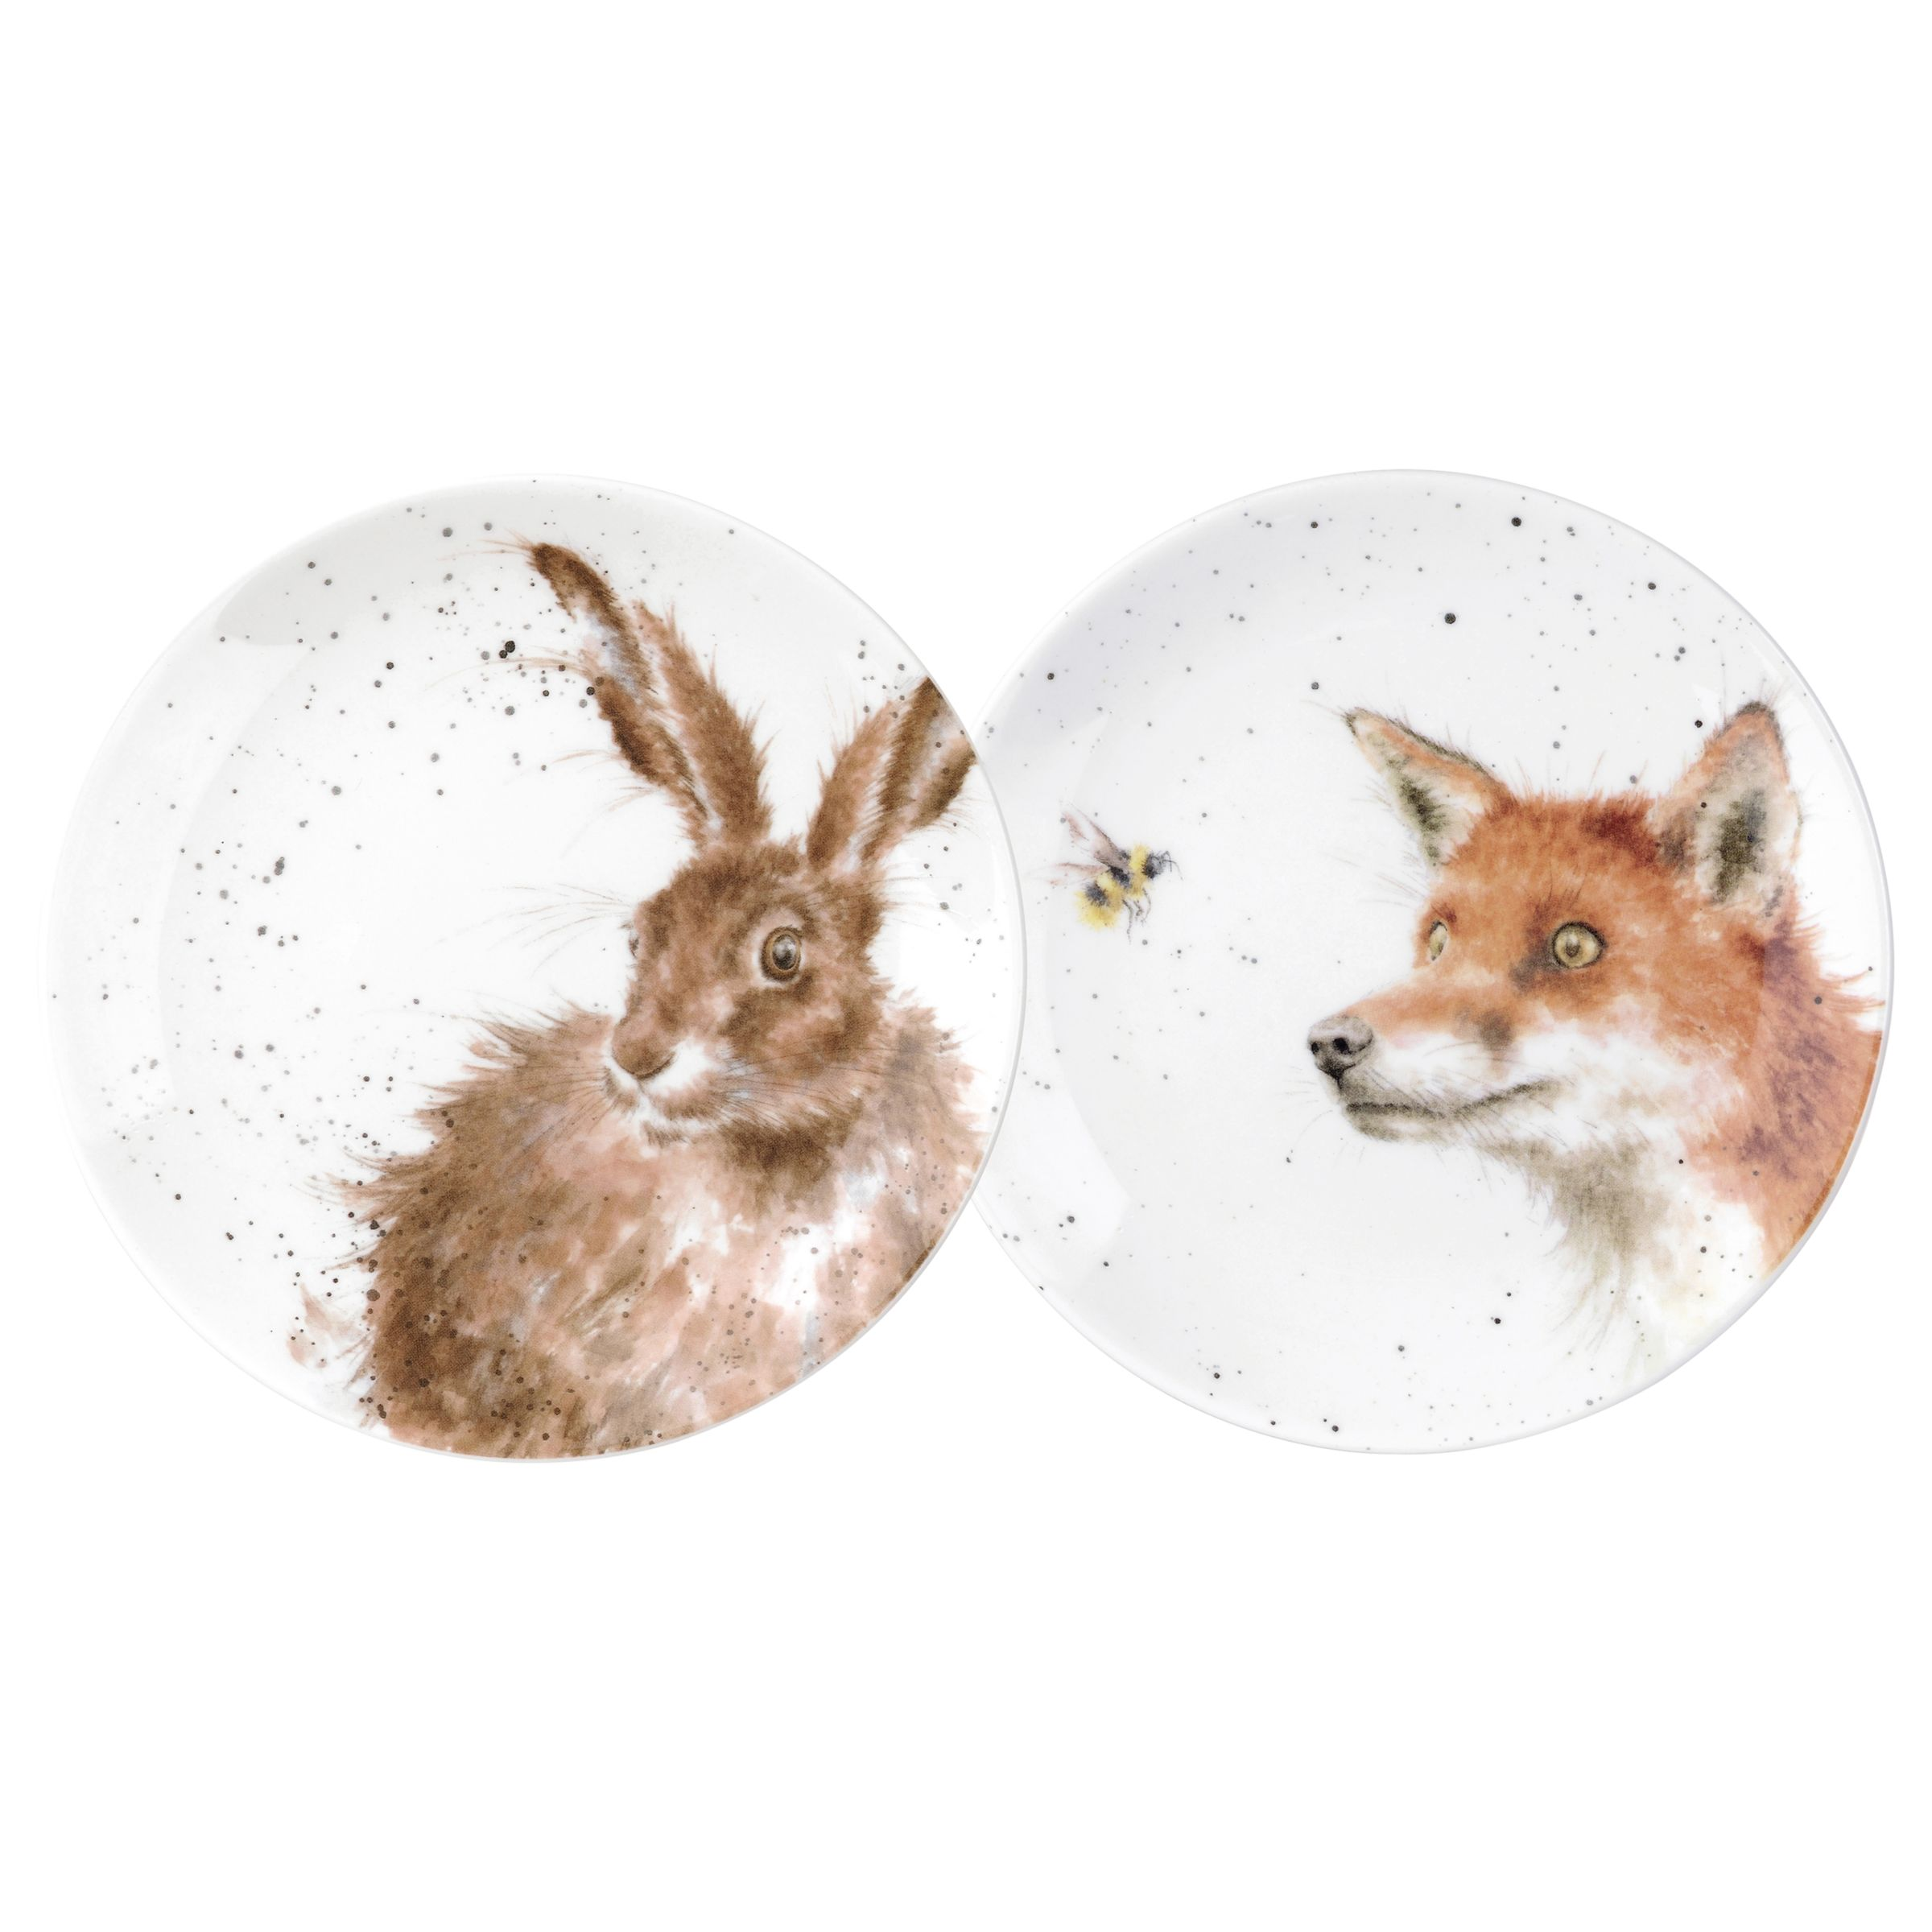 Royal Worcester Royal Worcester Wrendale 'Fox & Hare' 16.5cm Plates, Set of 2